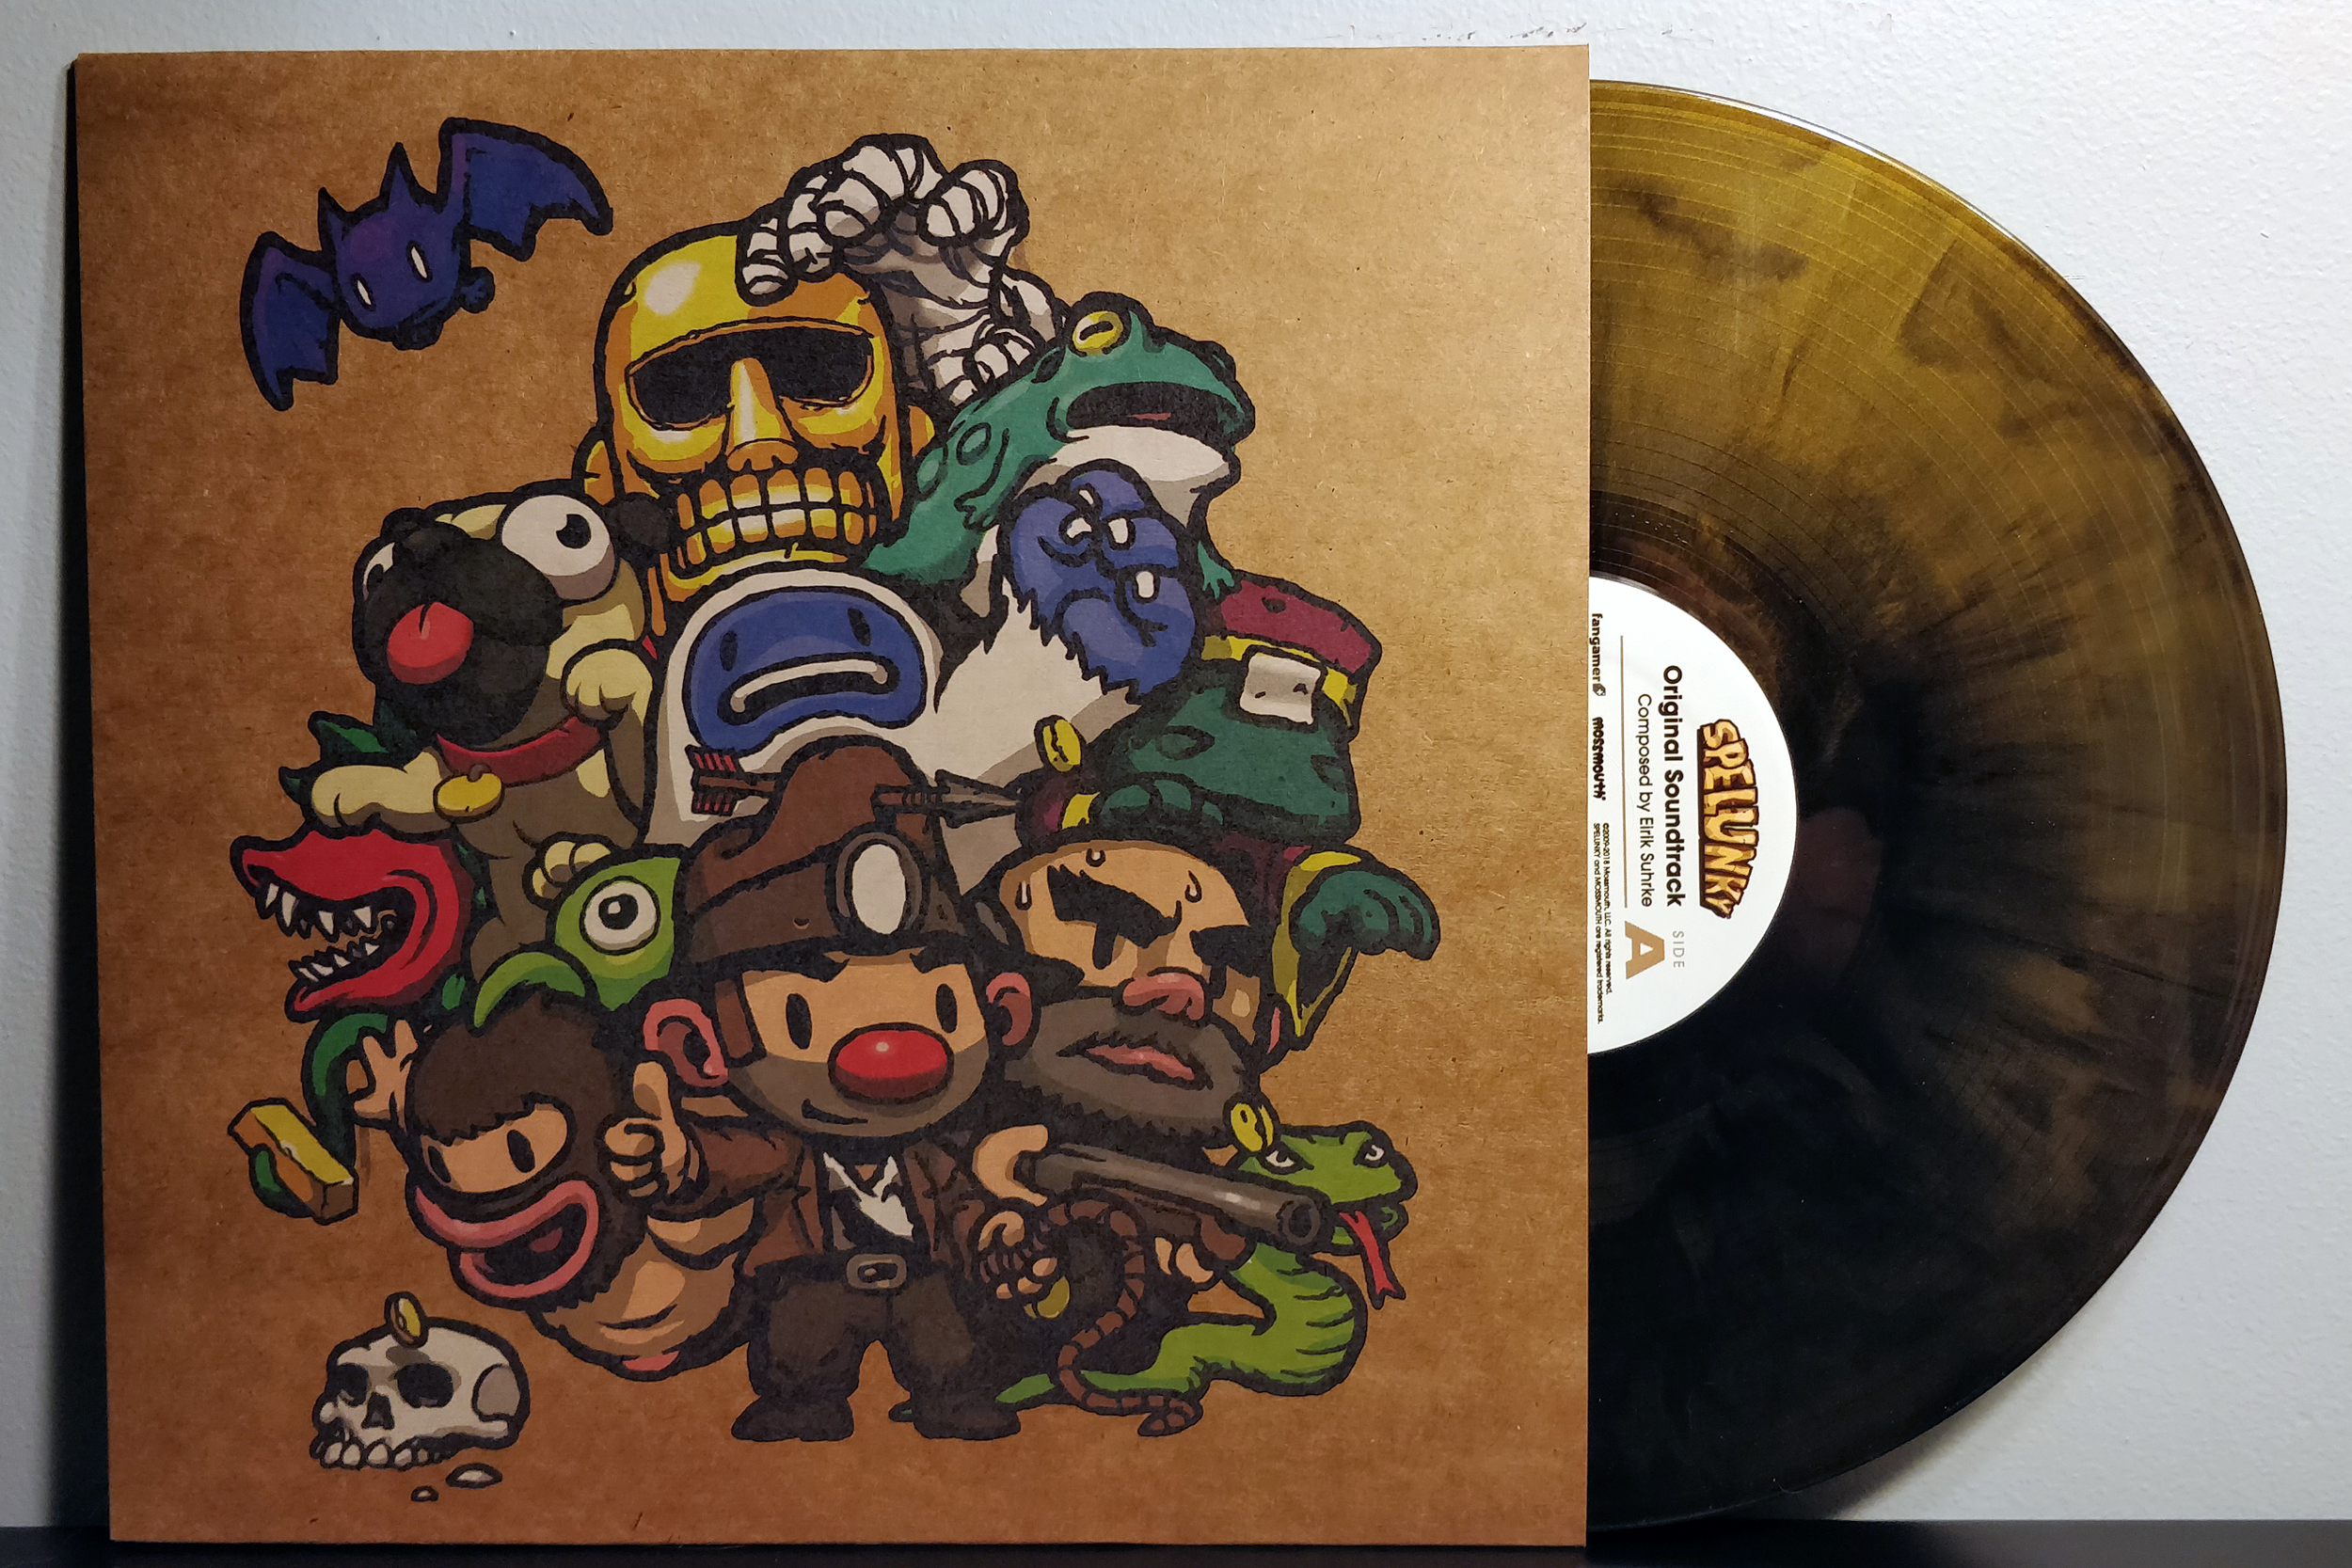 """Spelunky by Eirik Suhrke pressed on """"black and gold hand-poured vinyl"""" by Fangamer"""